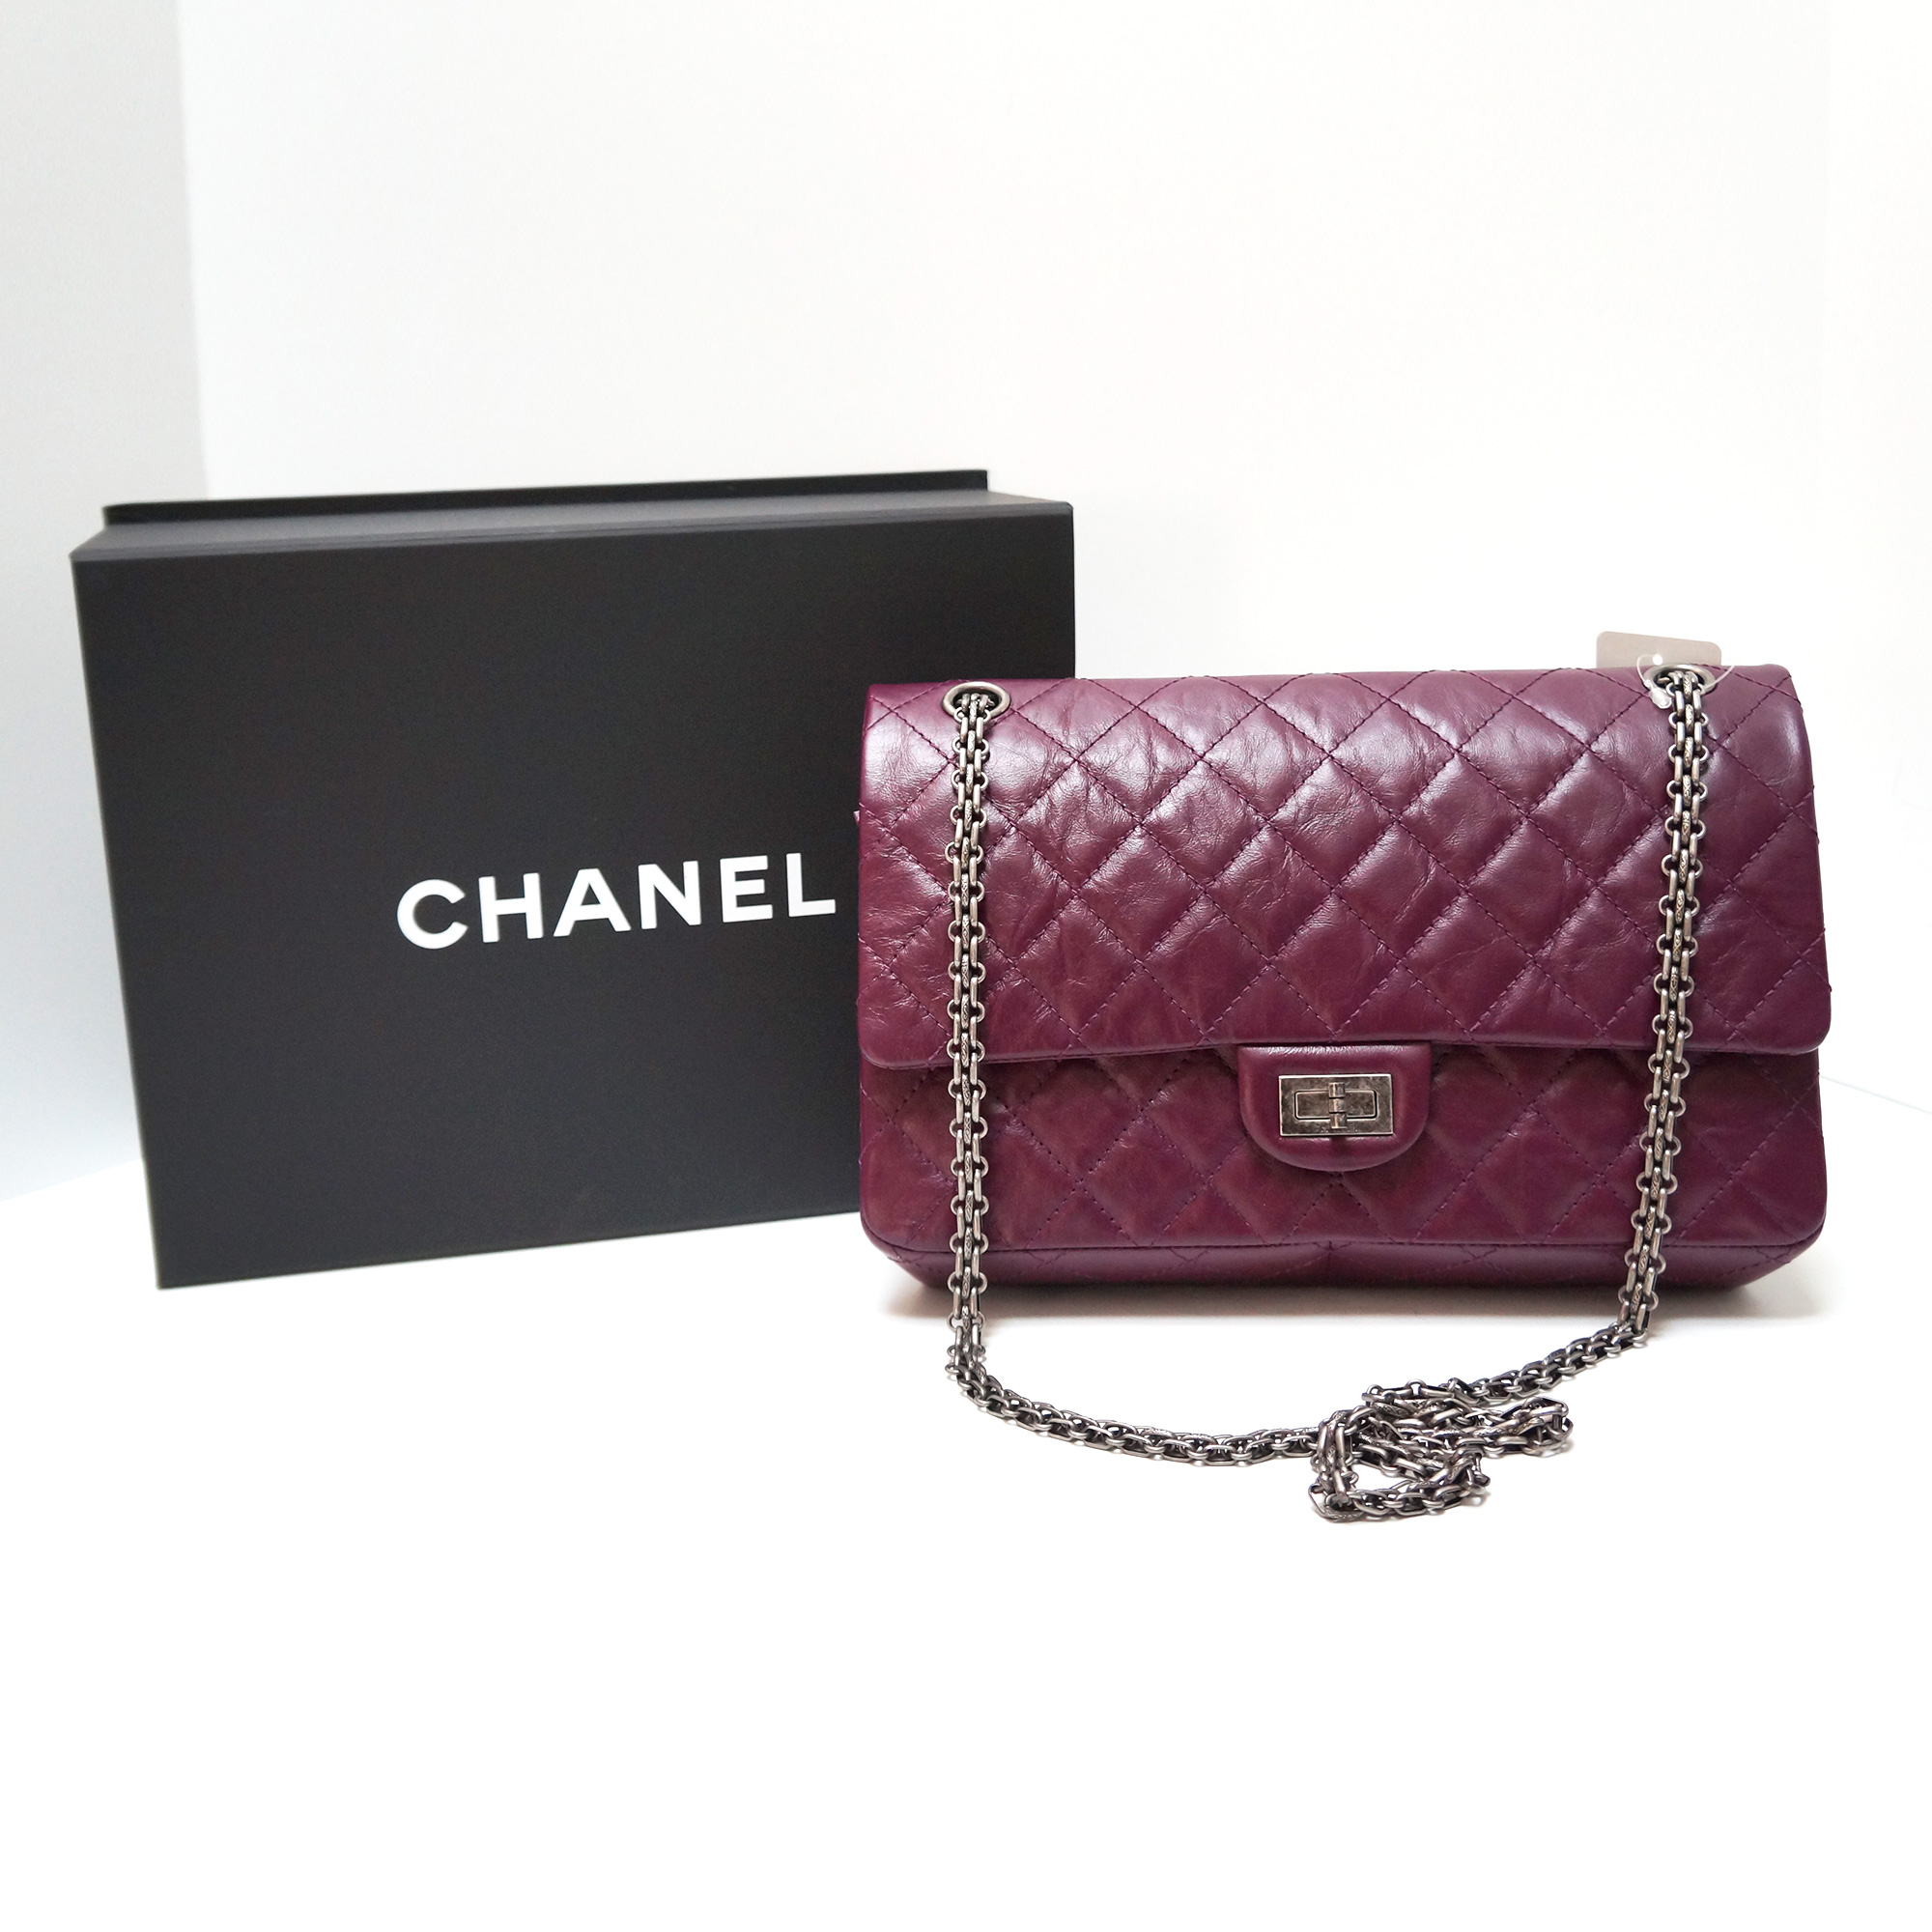 chanel reissue flap bag 226 size purple aged leather. Black Bedroom Furniture Sets. Home Design Ideas